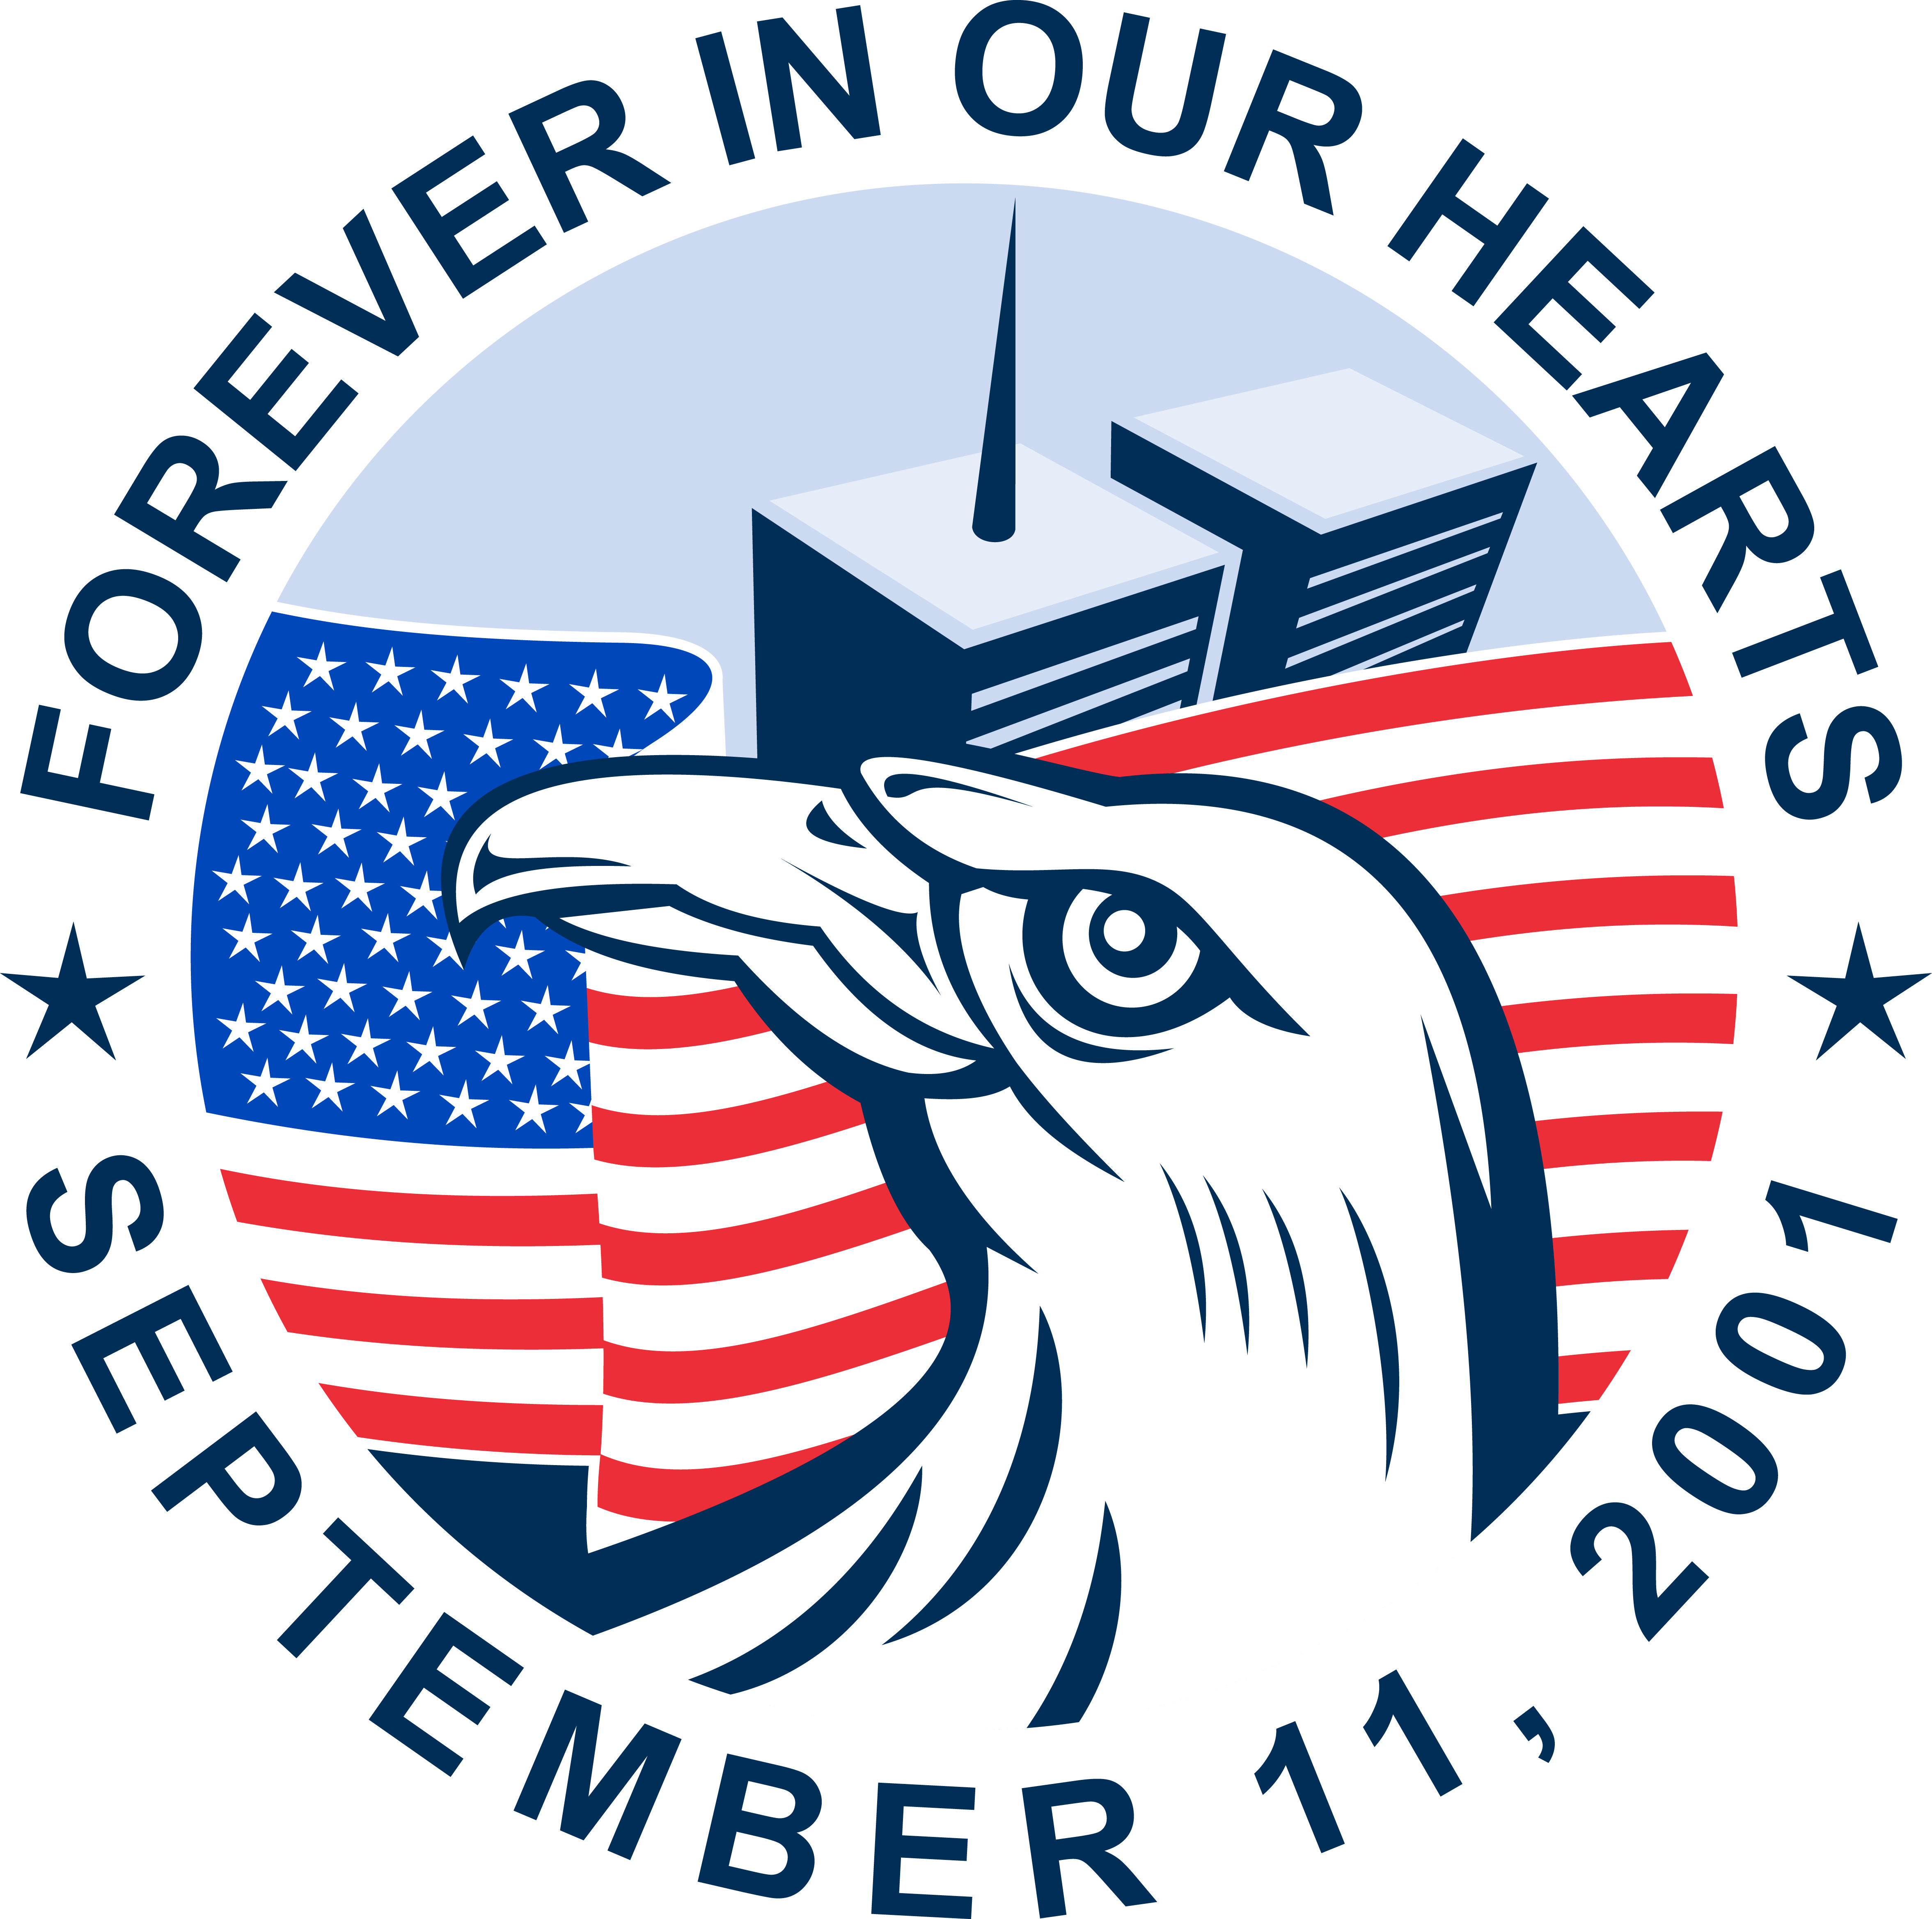 Security Perspective on September 11.